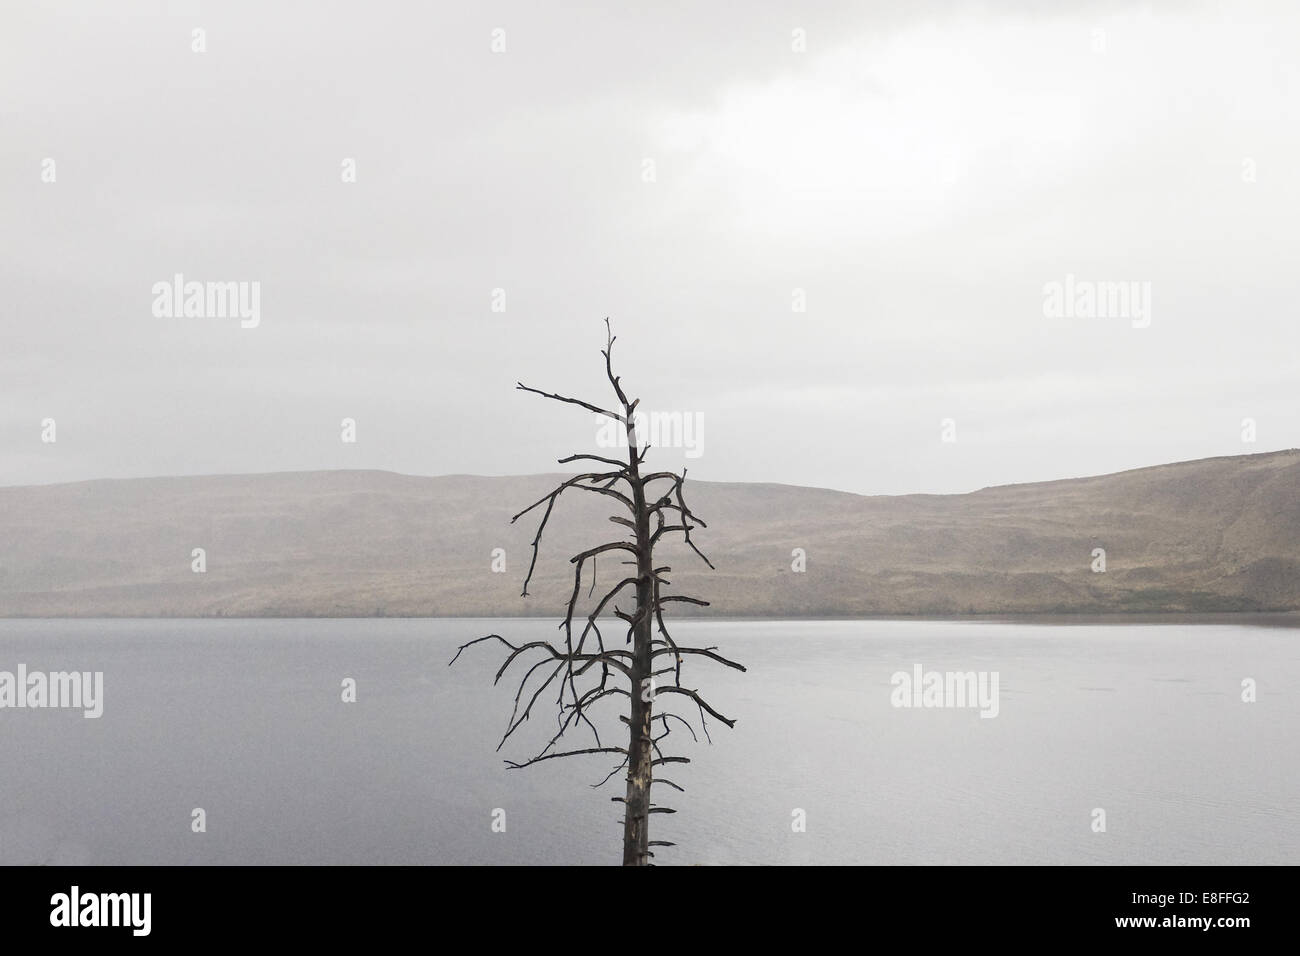 Bare tree by lake - Stock Image